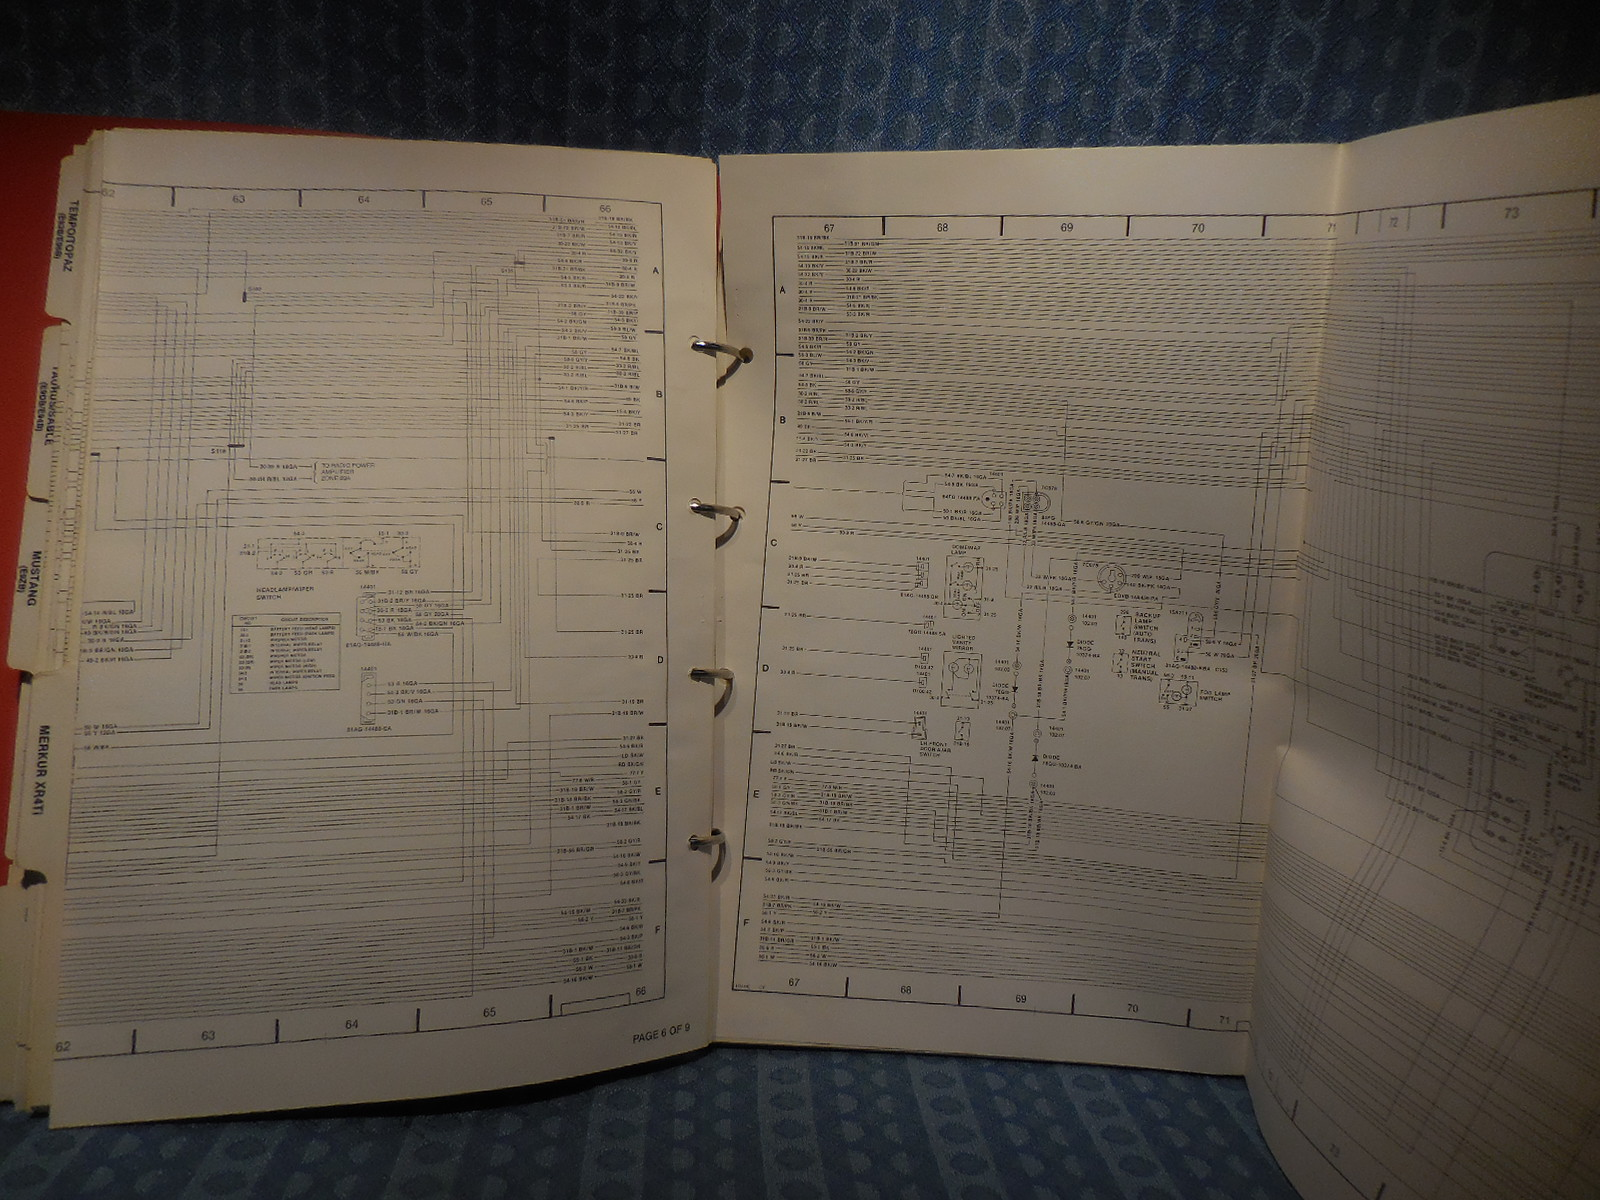 89 Mustang Heater Hose Diagram Schematic Diagrams 1989 Lincoln Mark Vii Wiring Trusted Harness